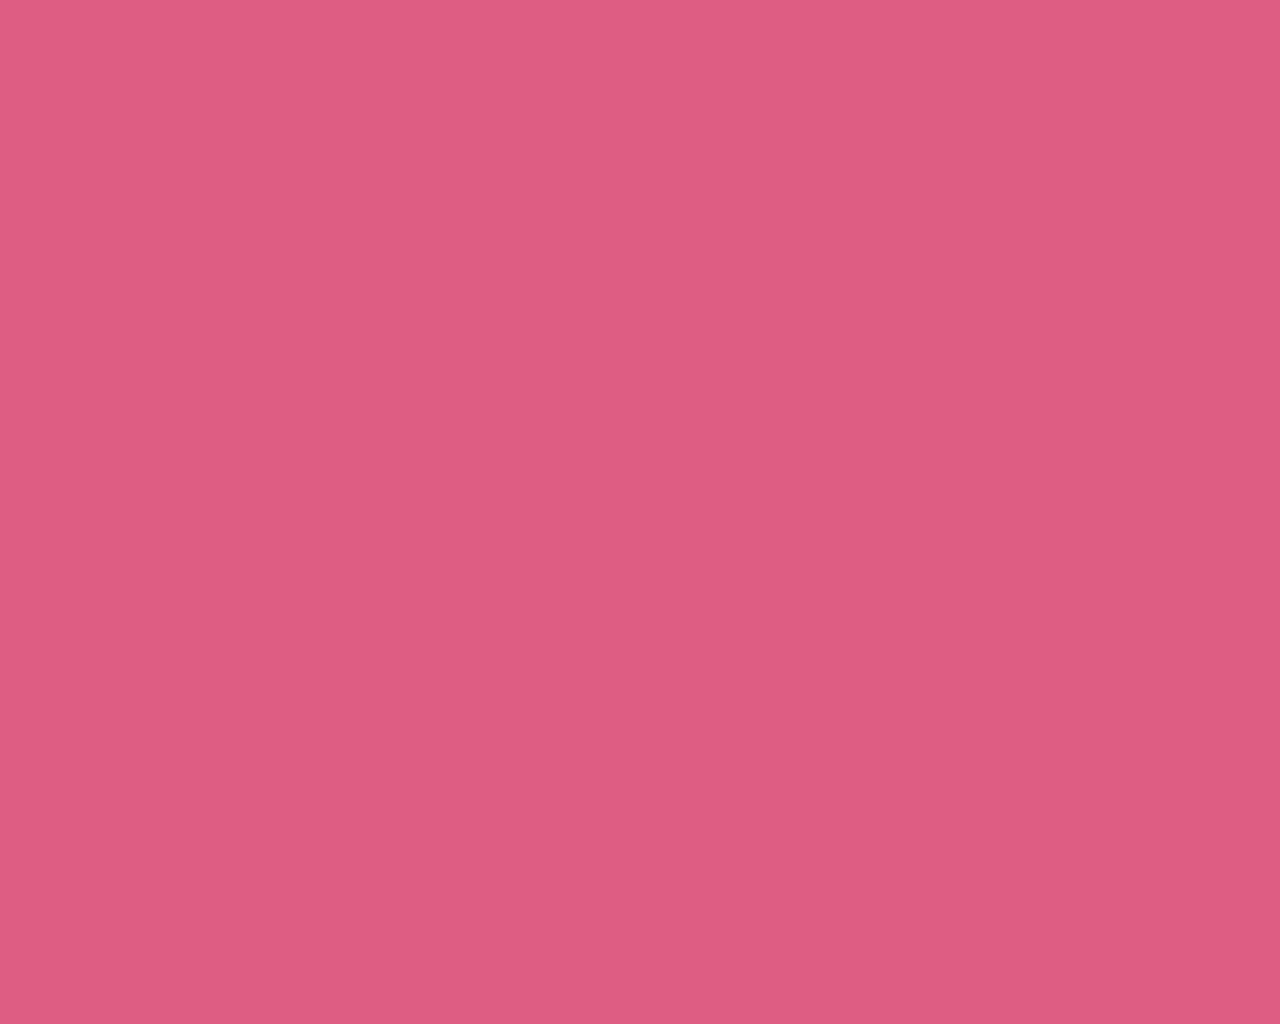 1280x1024 Blush Solid Color Background